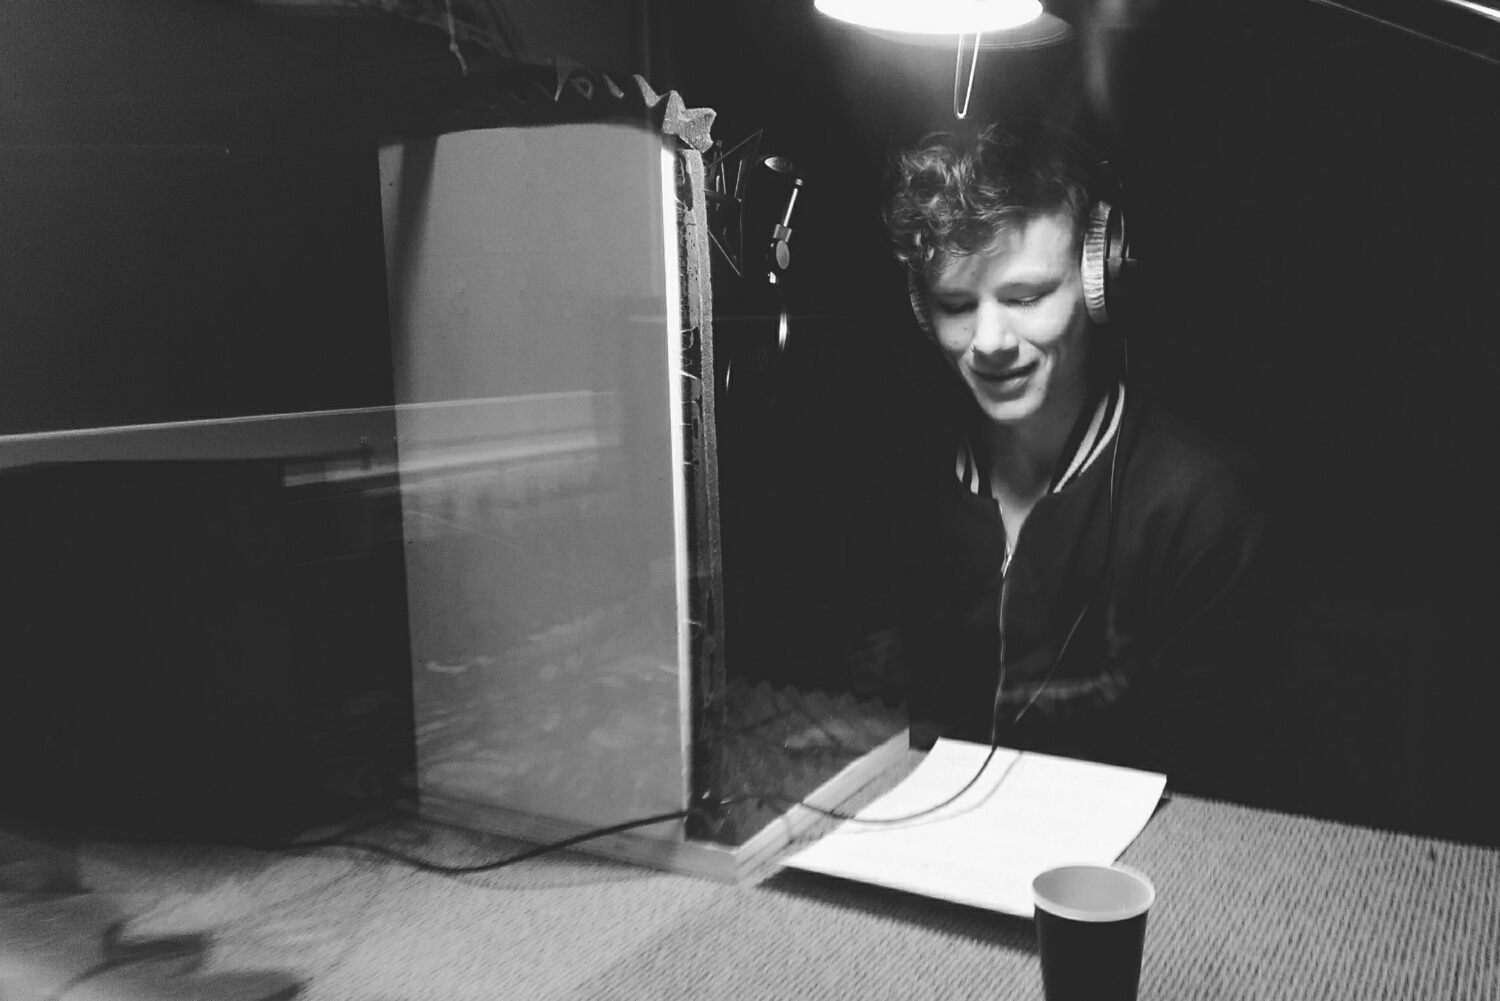 Chris recording the voice over